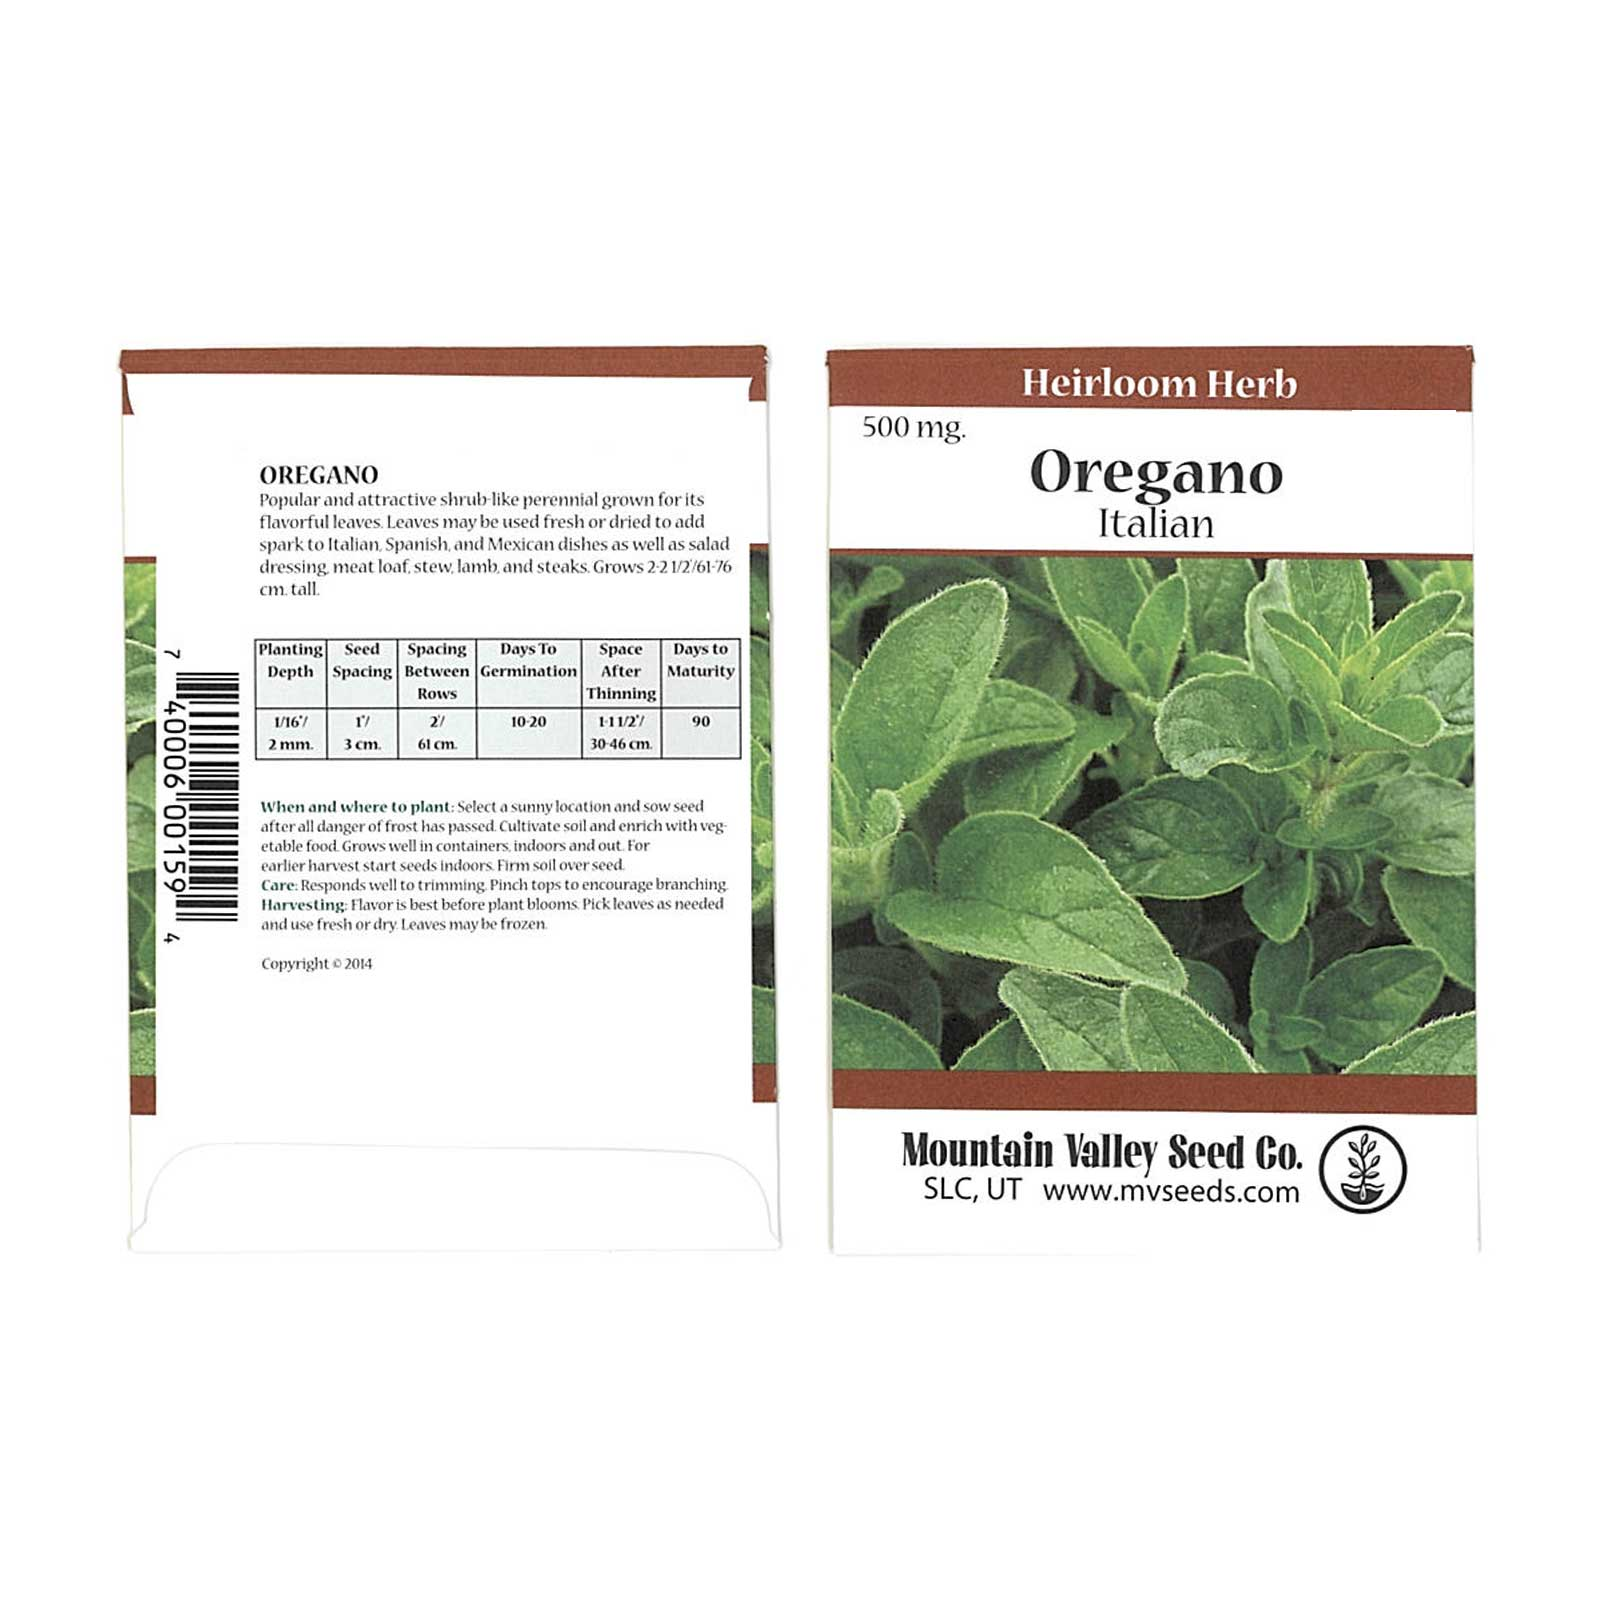 Common Italian Oregano Herb Garden Seeds - 500 mg Packet - Non-GMO, Heirloom Herbal Gardening & Micro Greens Seed